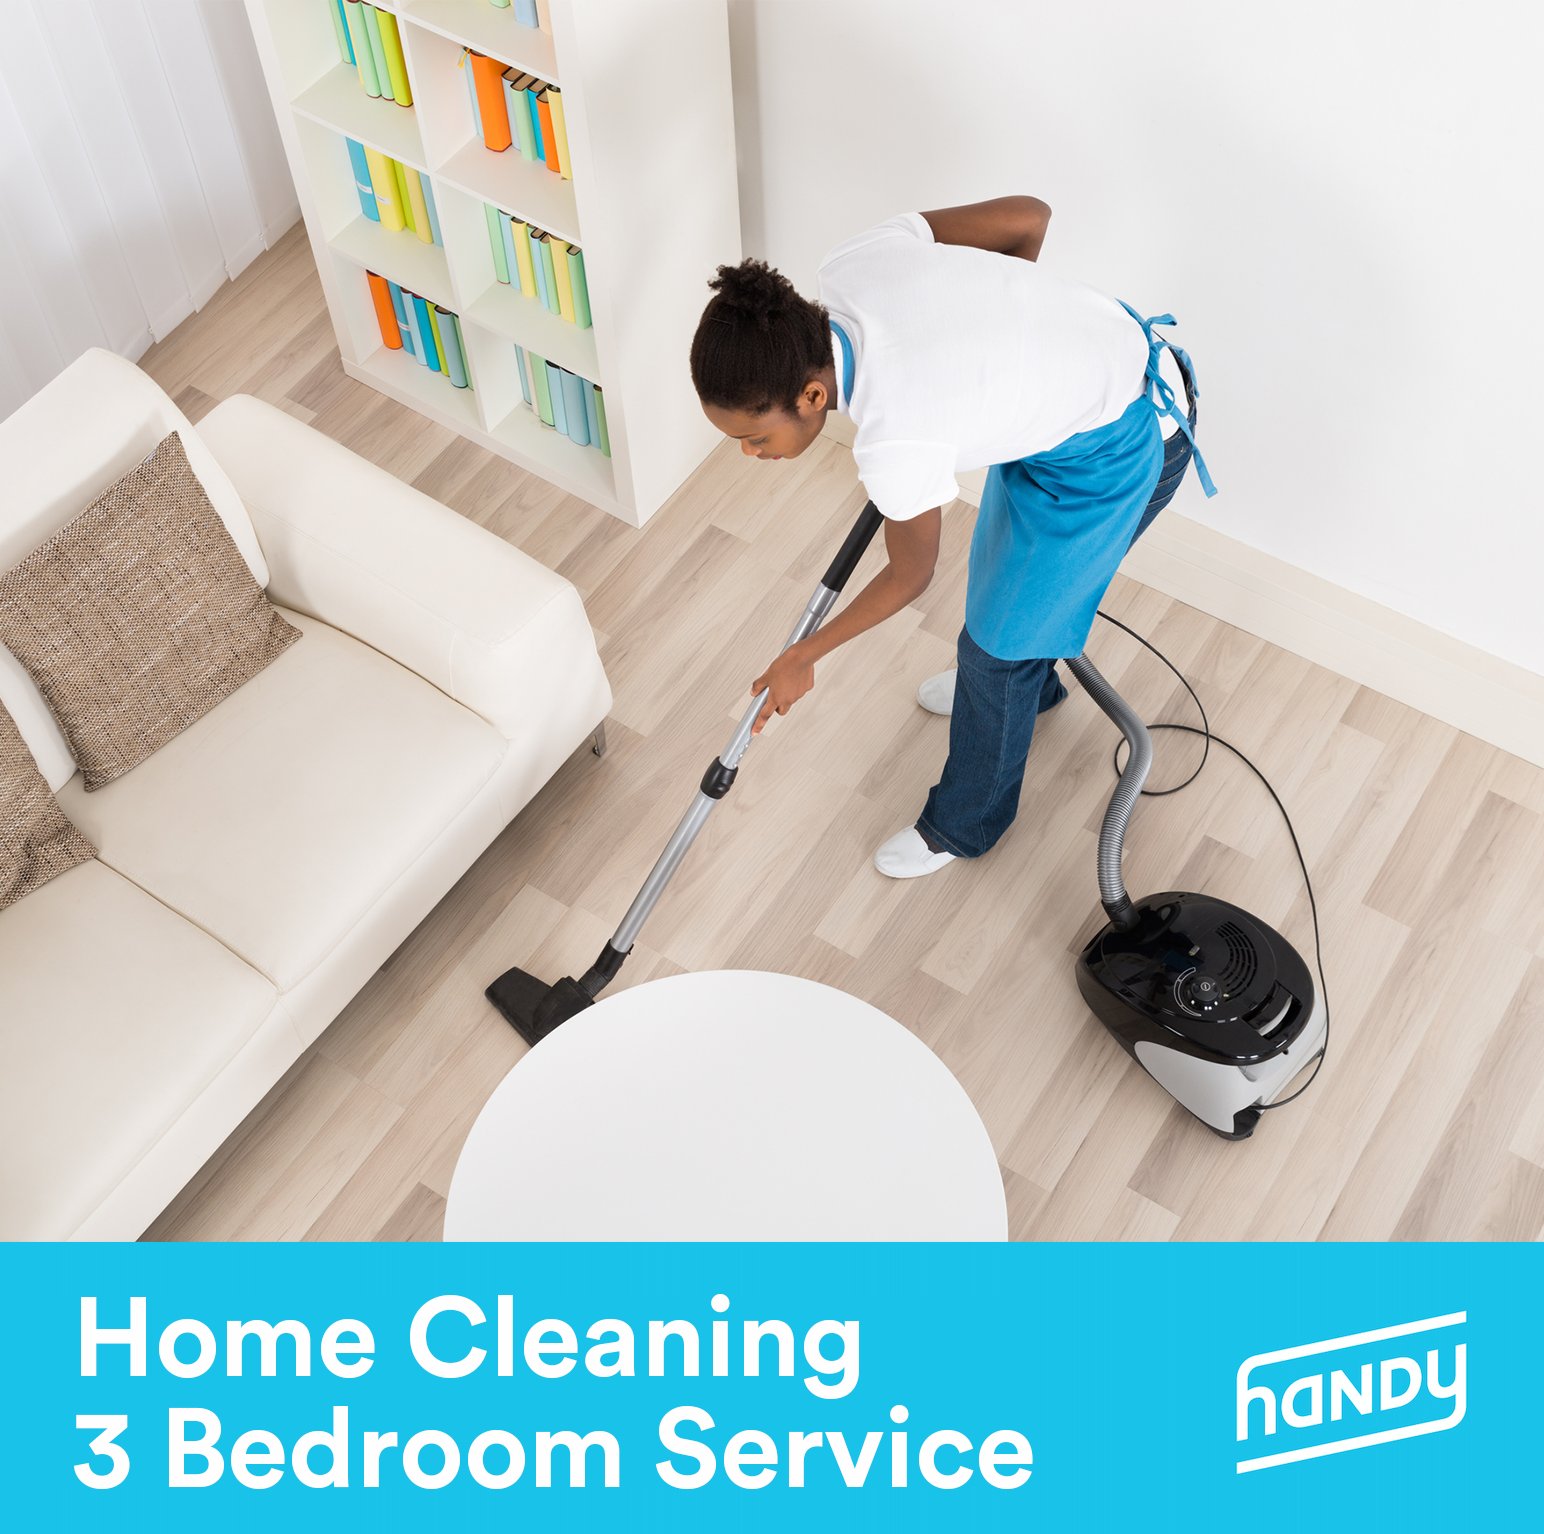 Home Cleaning by Handy   12 Bedroom   Walmart.com